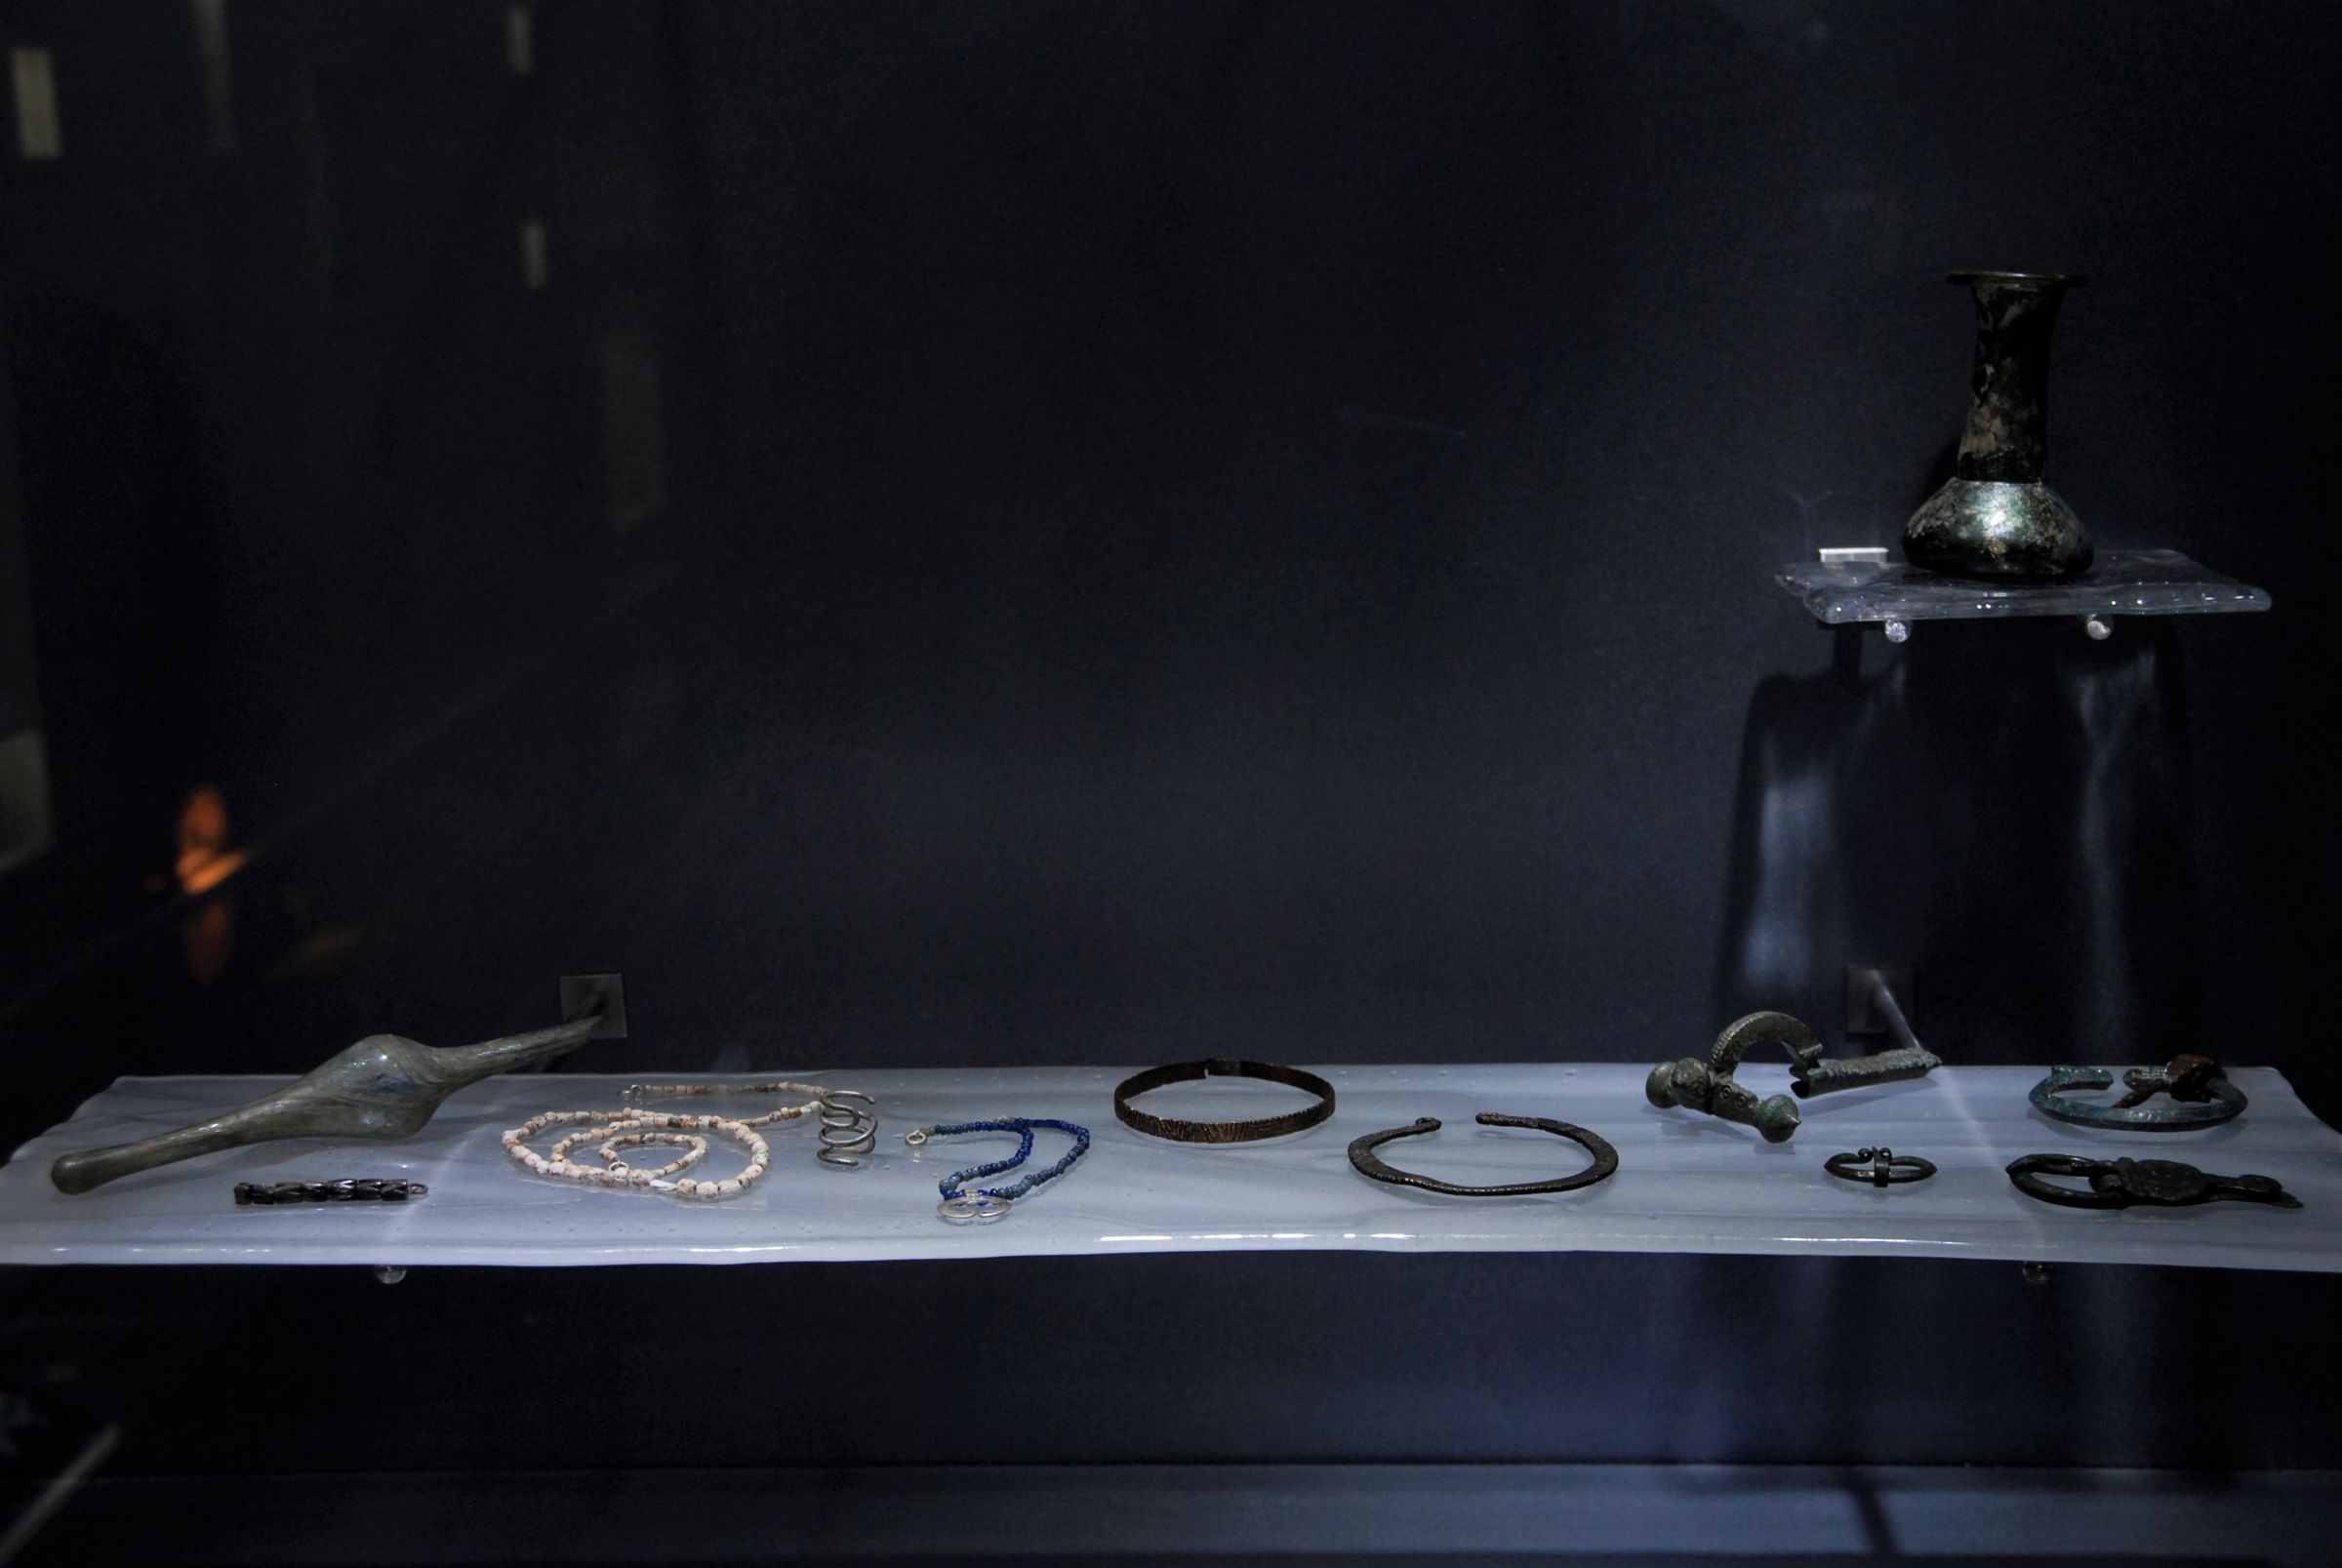 Jewelry and personal items in the display case with antique material